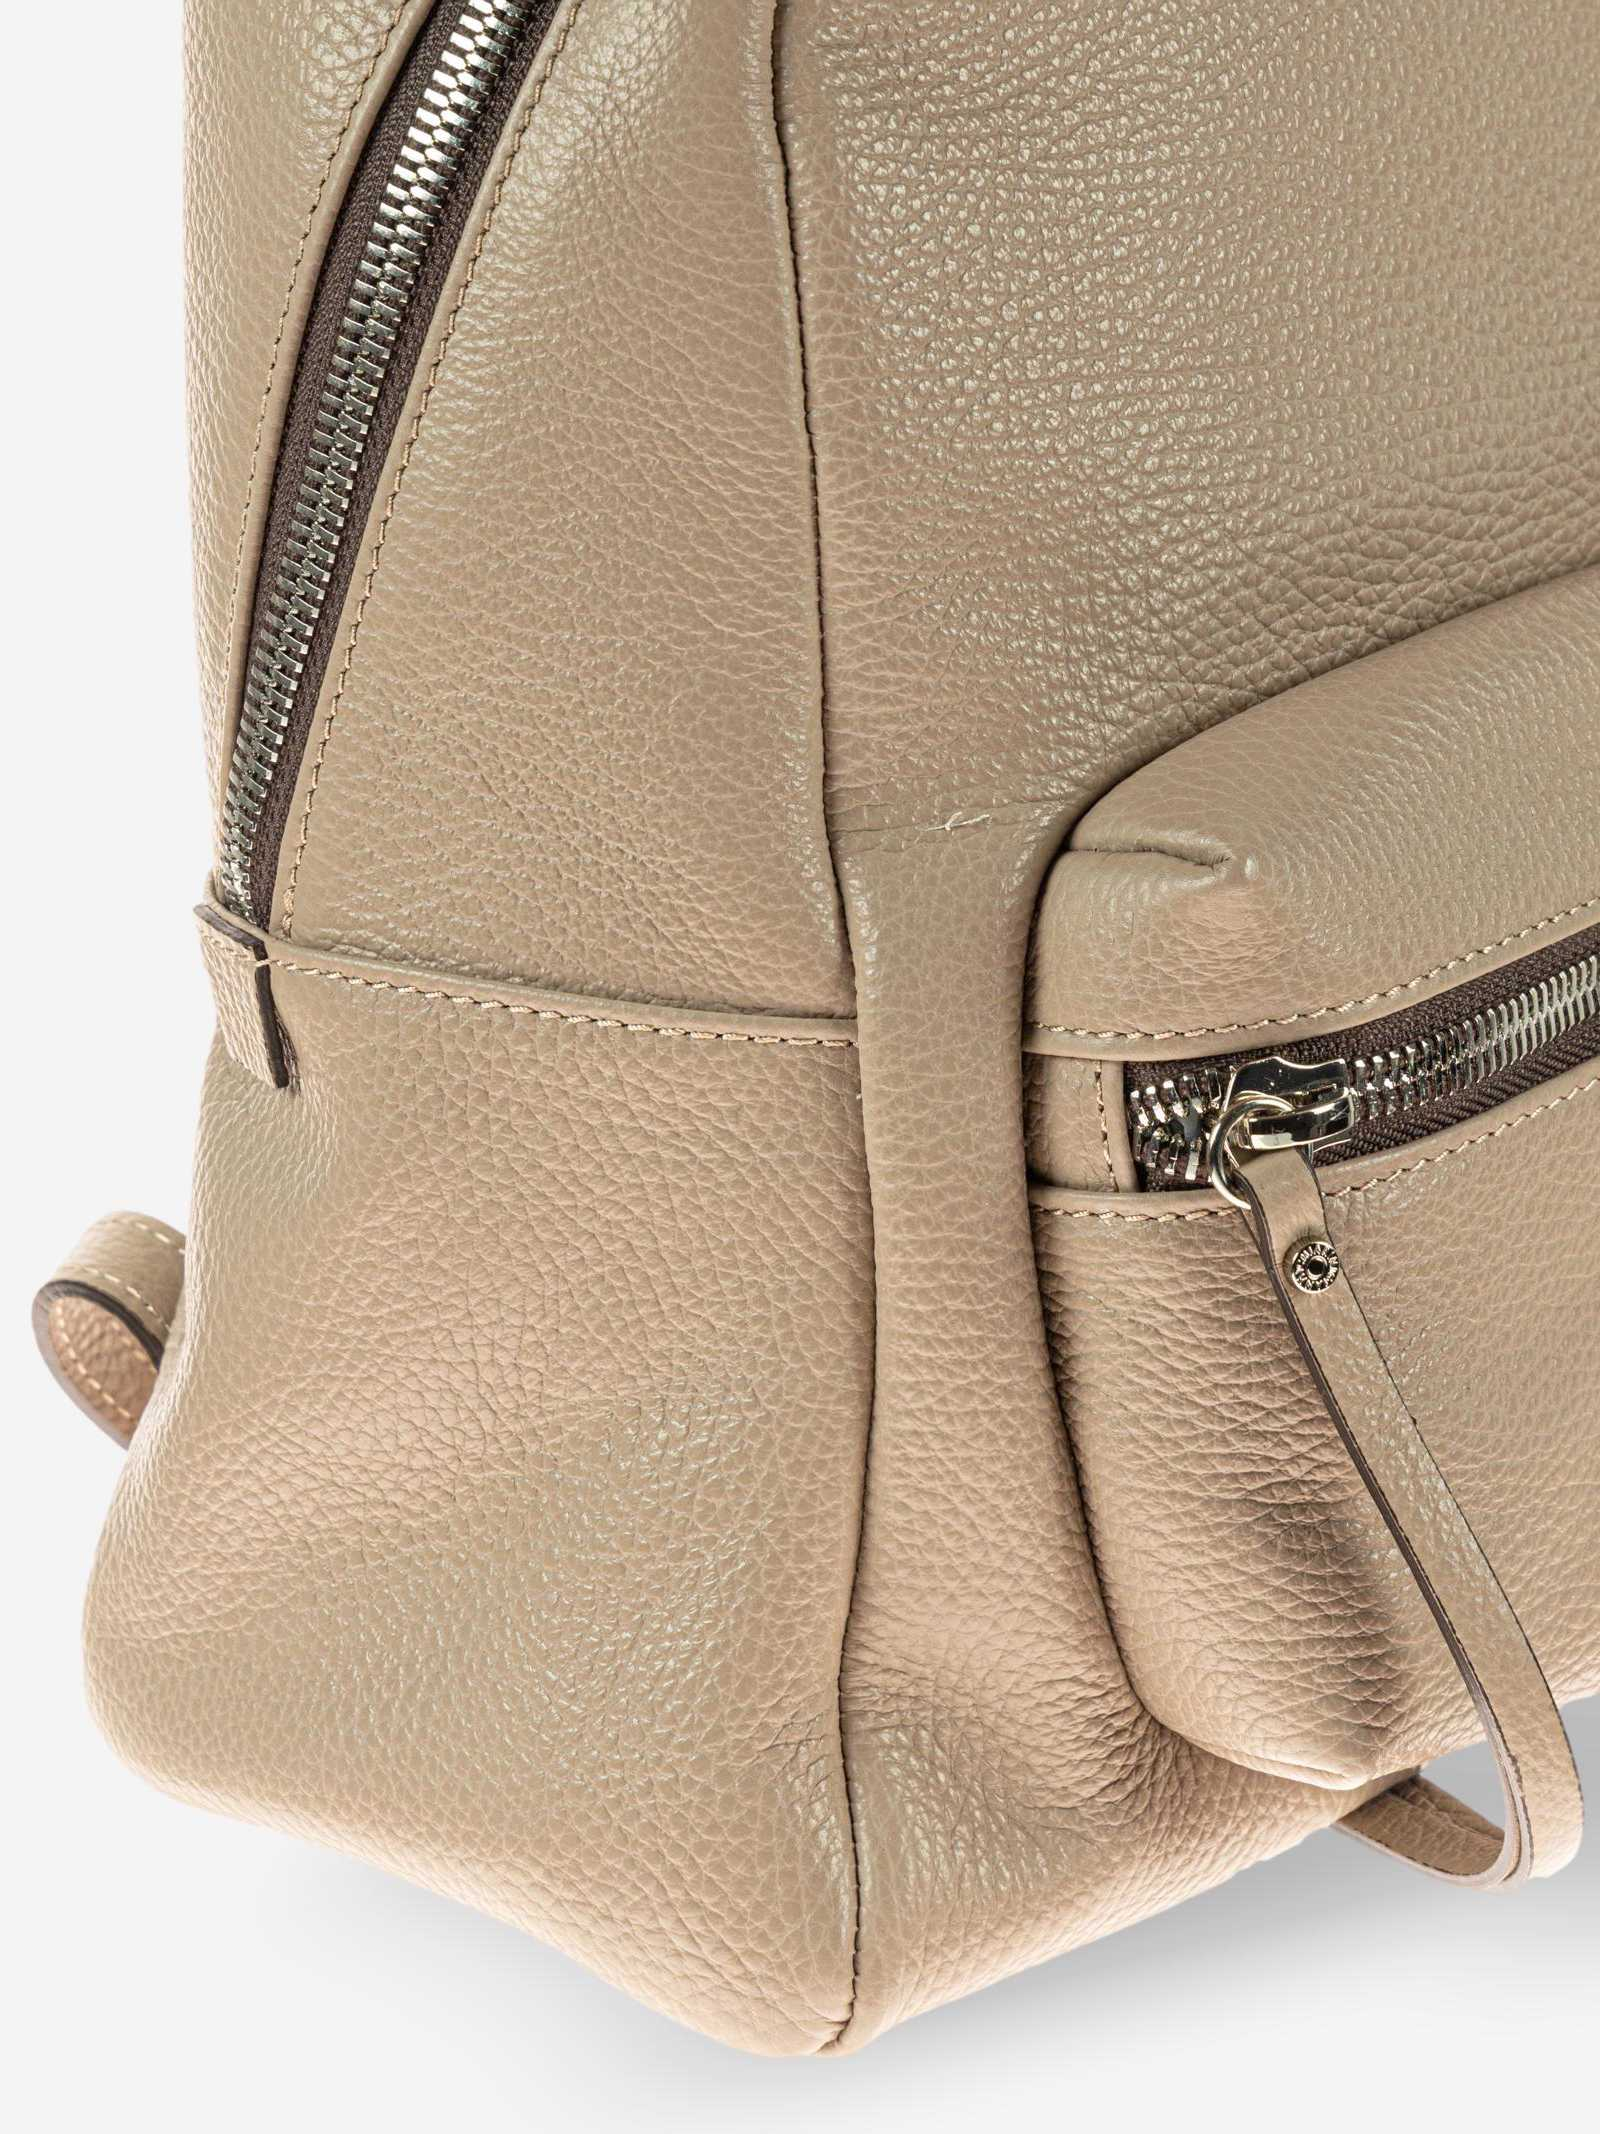 Backpack Gianni Chiarini GIANNI CHIARINI | 5032286 | ZN860511706